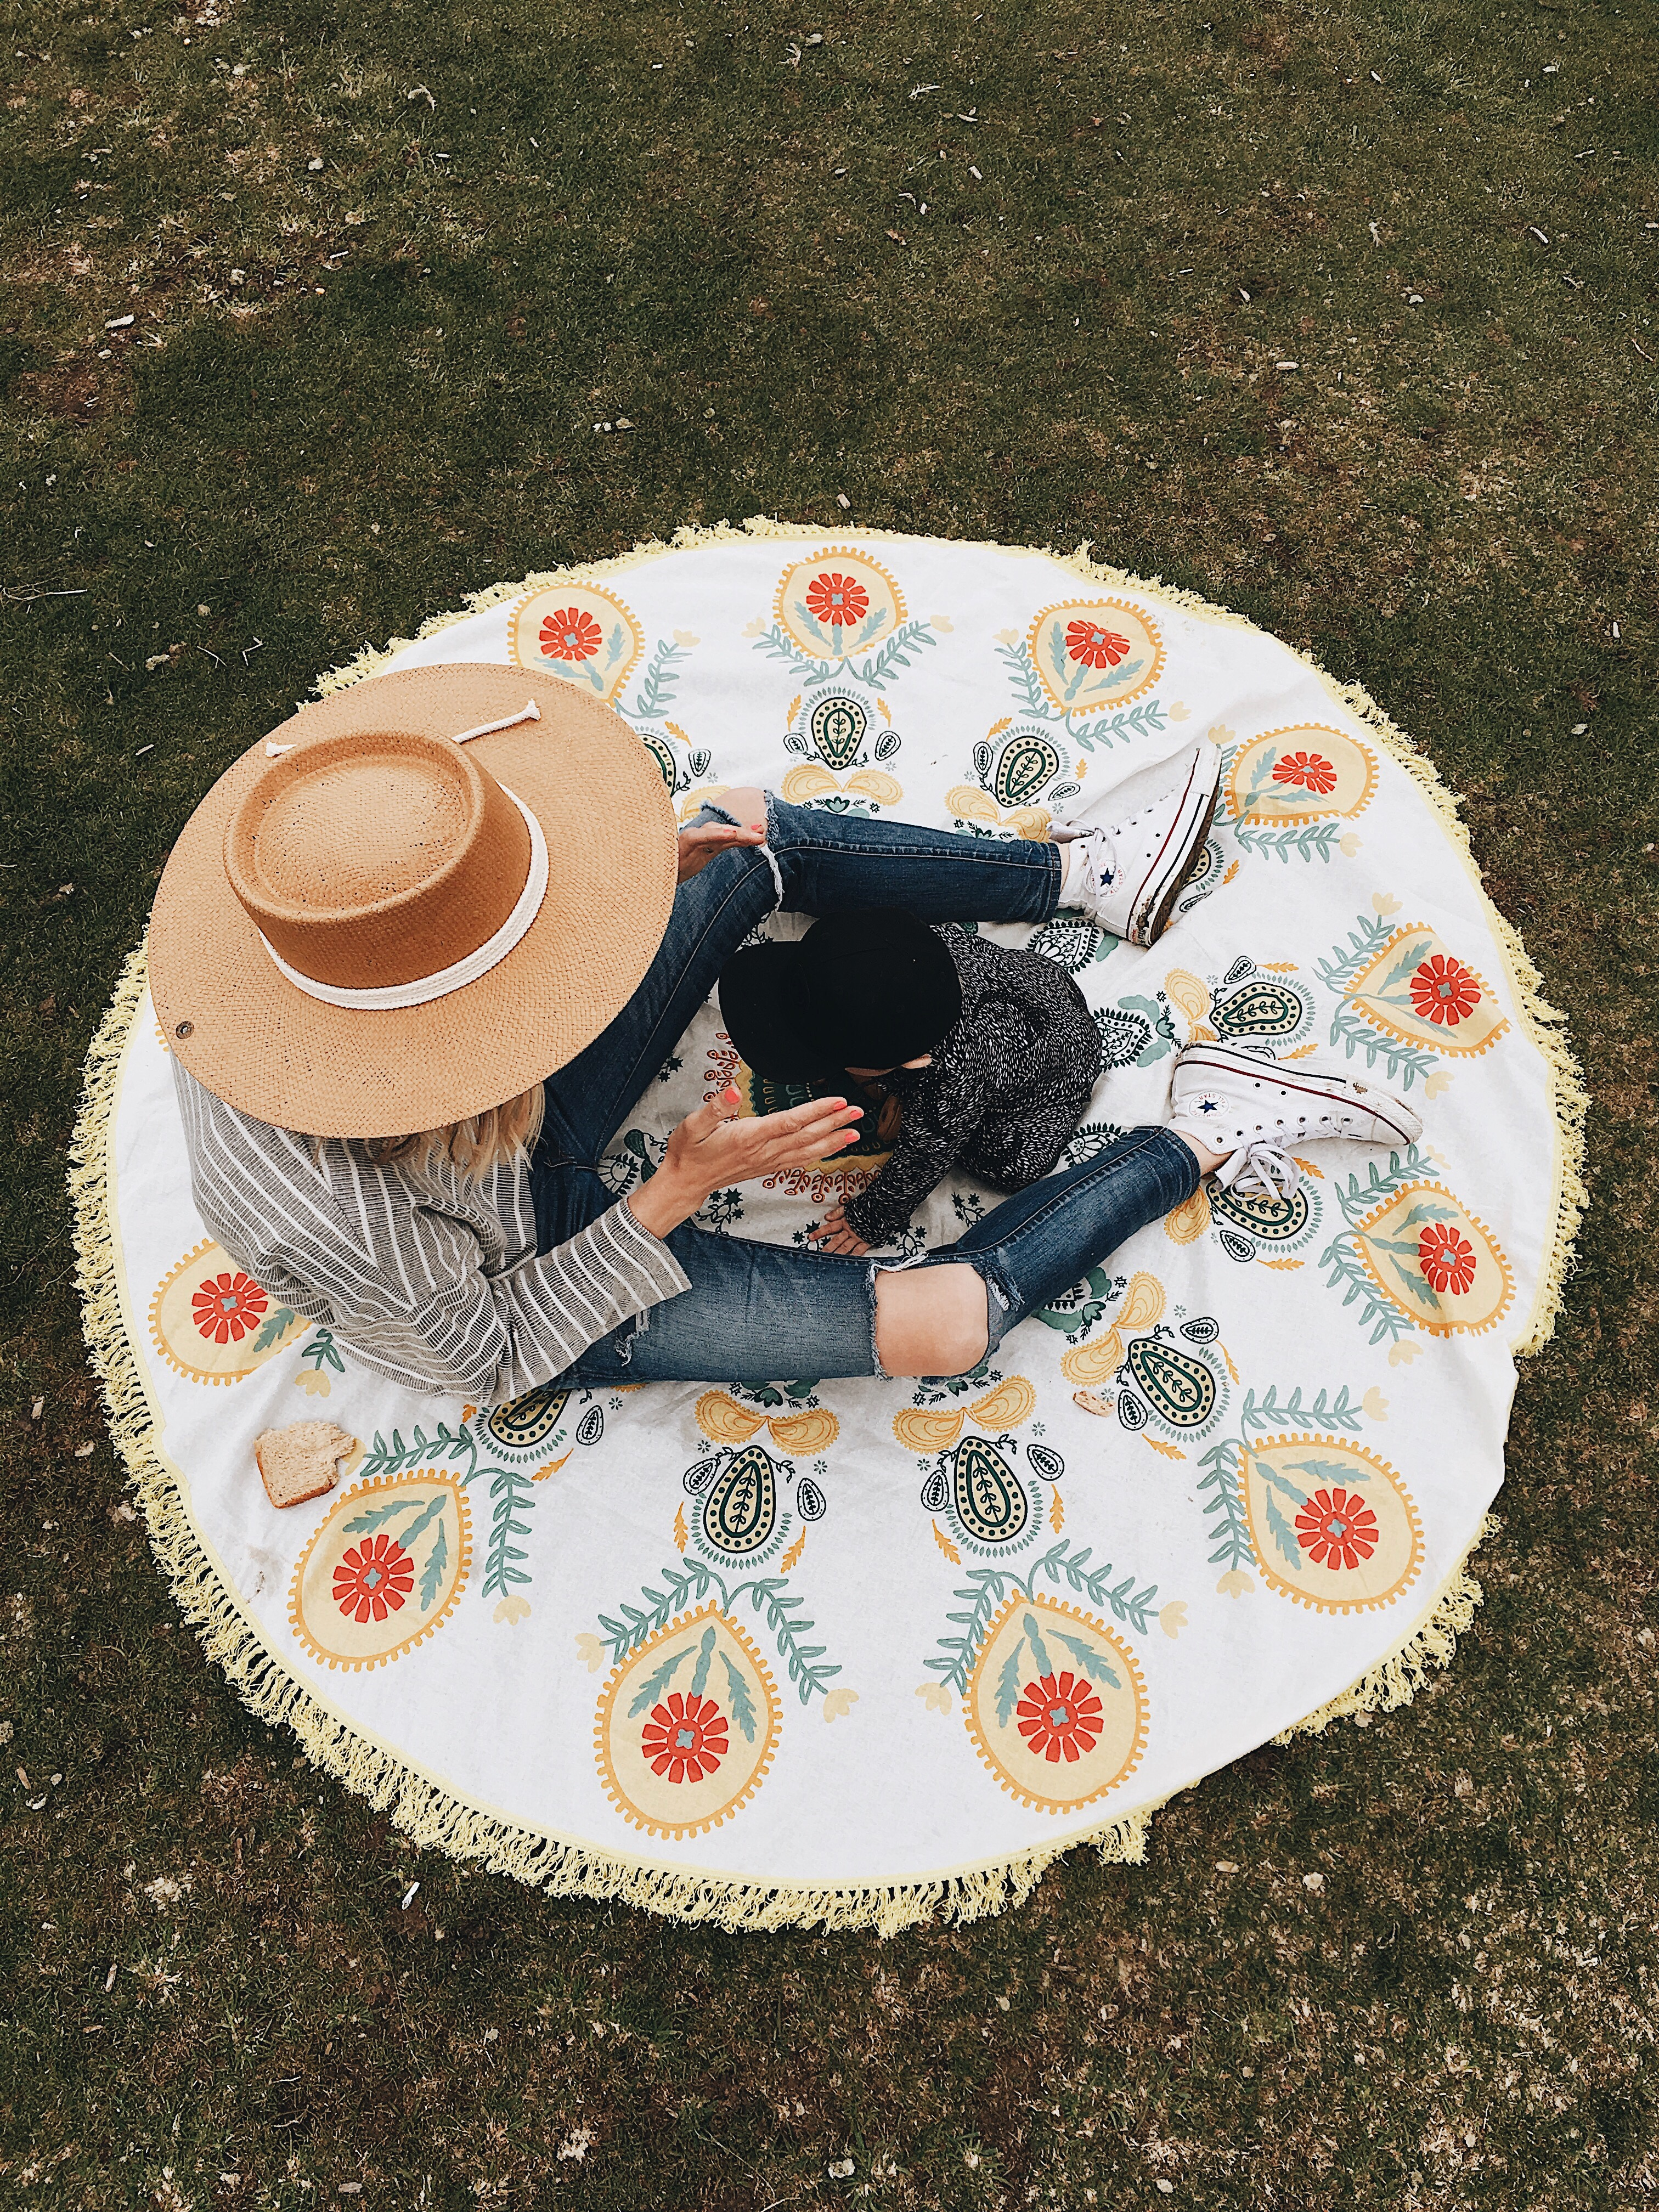 Life as an Instagram Mom: Interview by Parents Magazine by lifestyle blogger Ginger of the parrish place